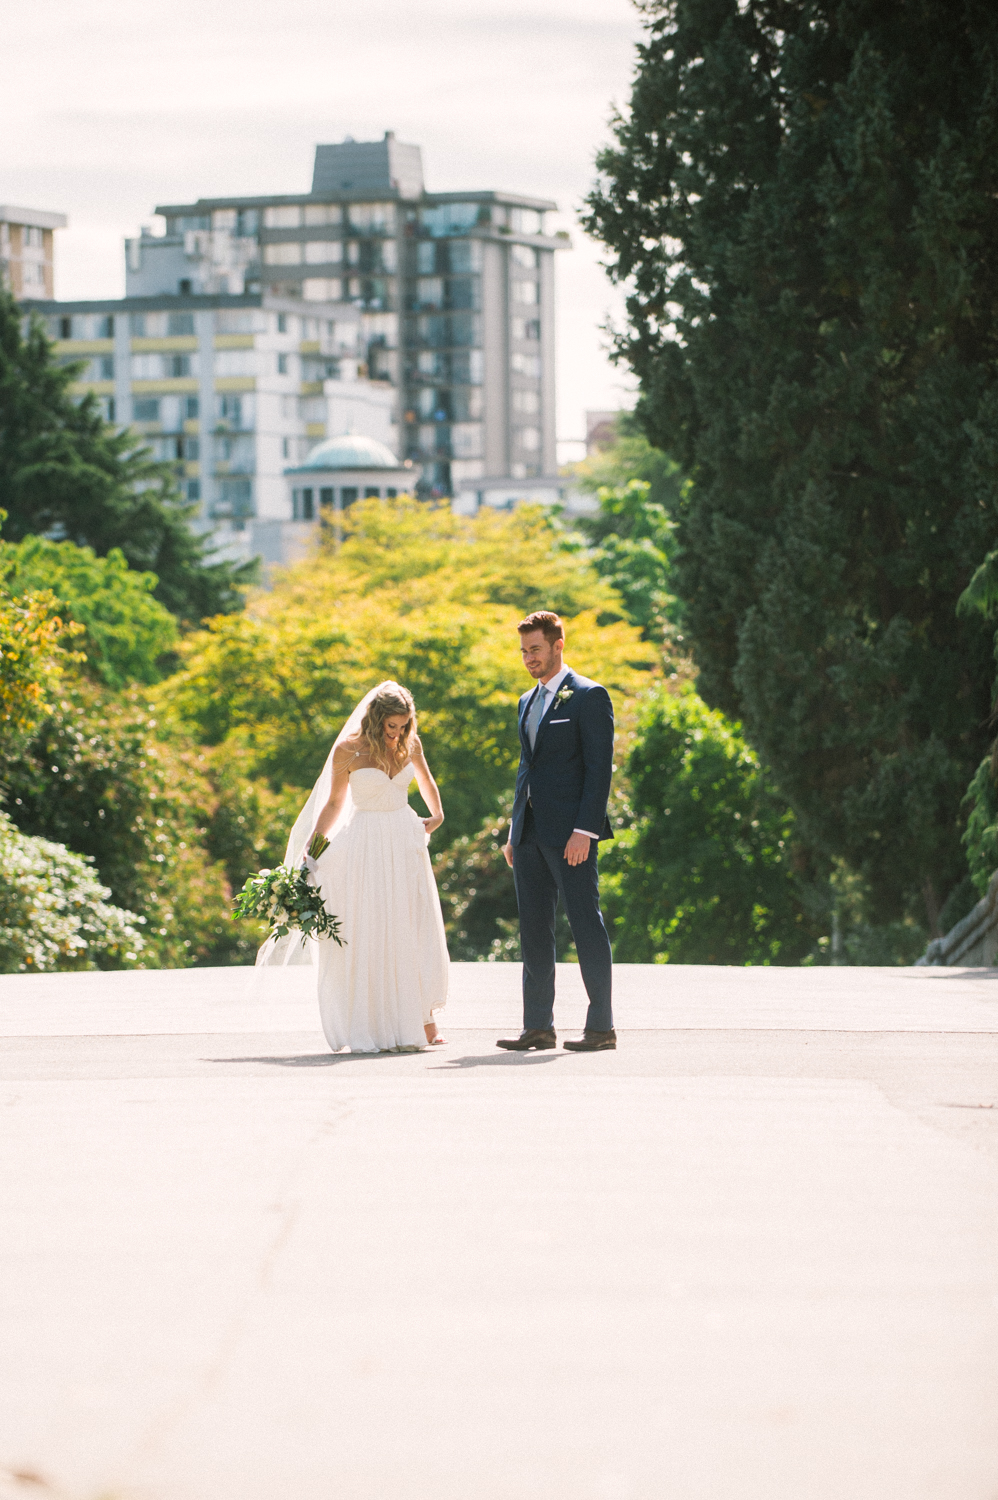 Stanely Park Wedding, Vancouver BC-Jessika Hunter-33.JPG